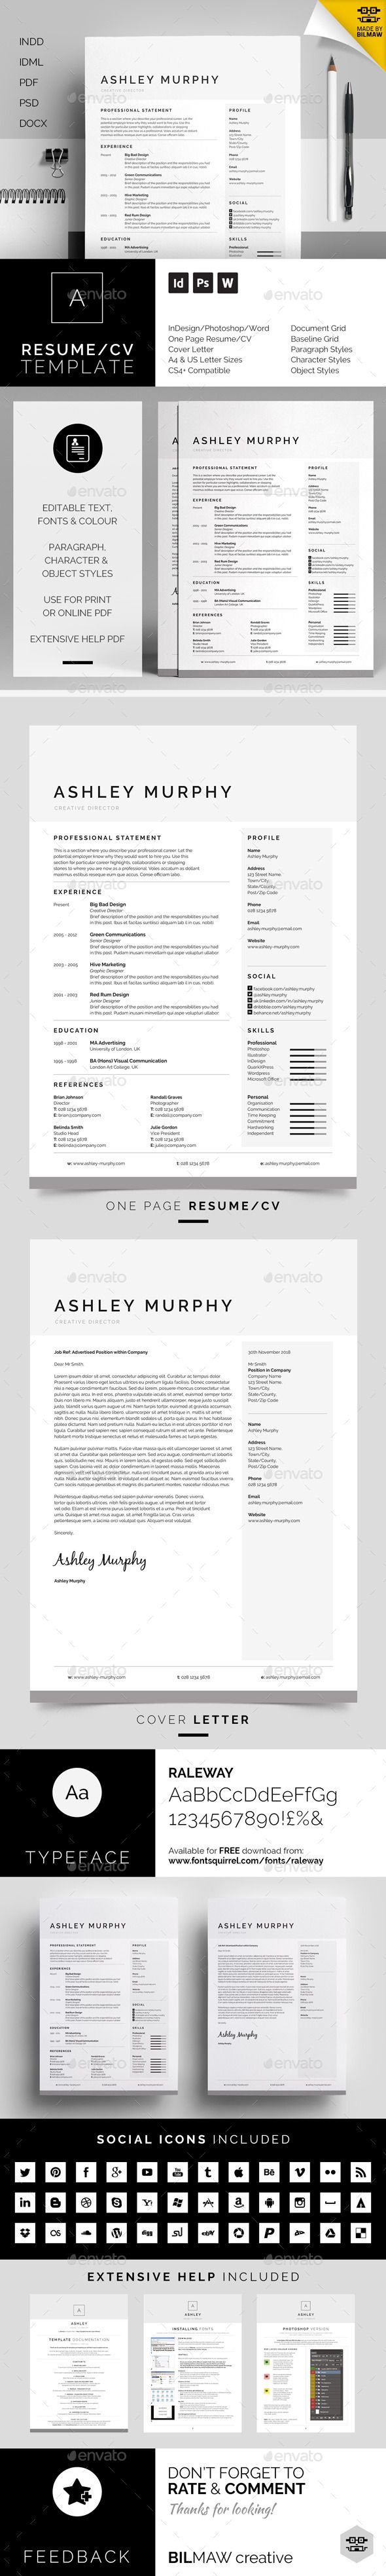 resumecv ashley letter template wordfree - Resume Templates Word Free